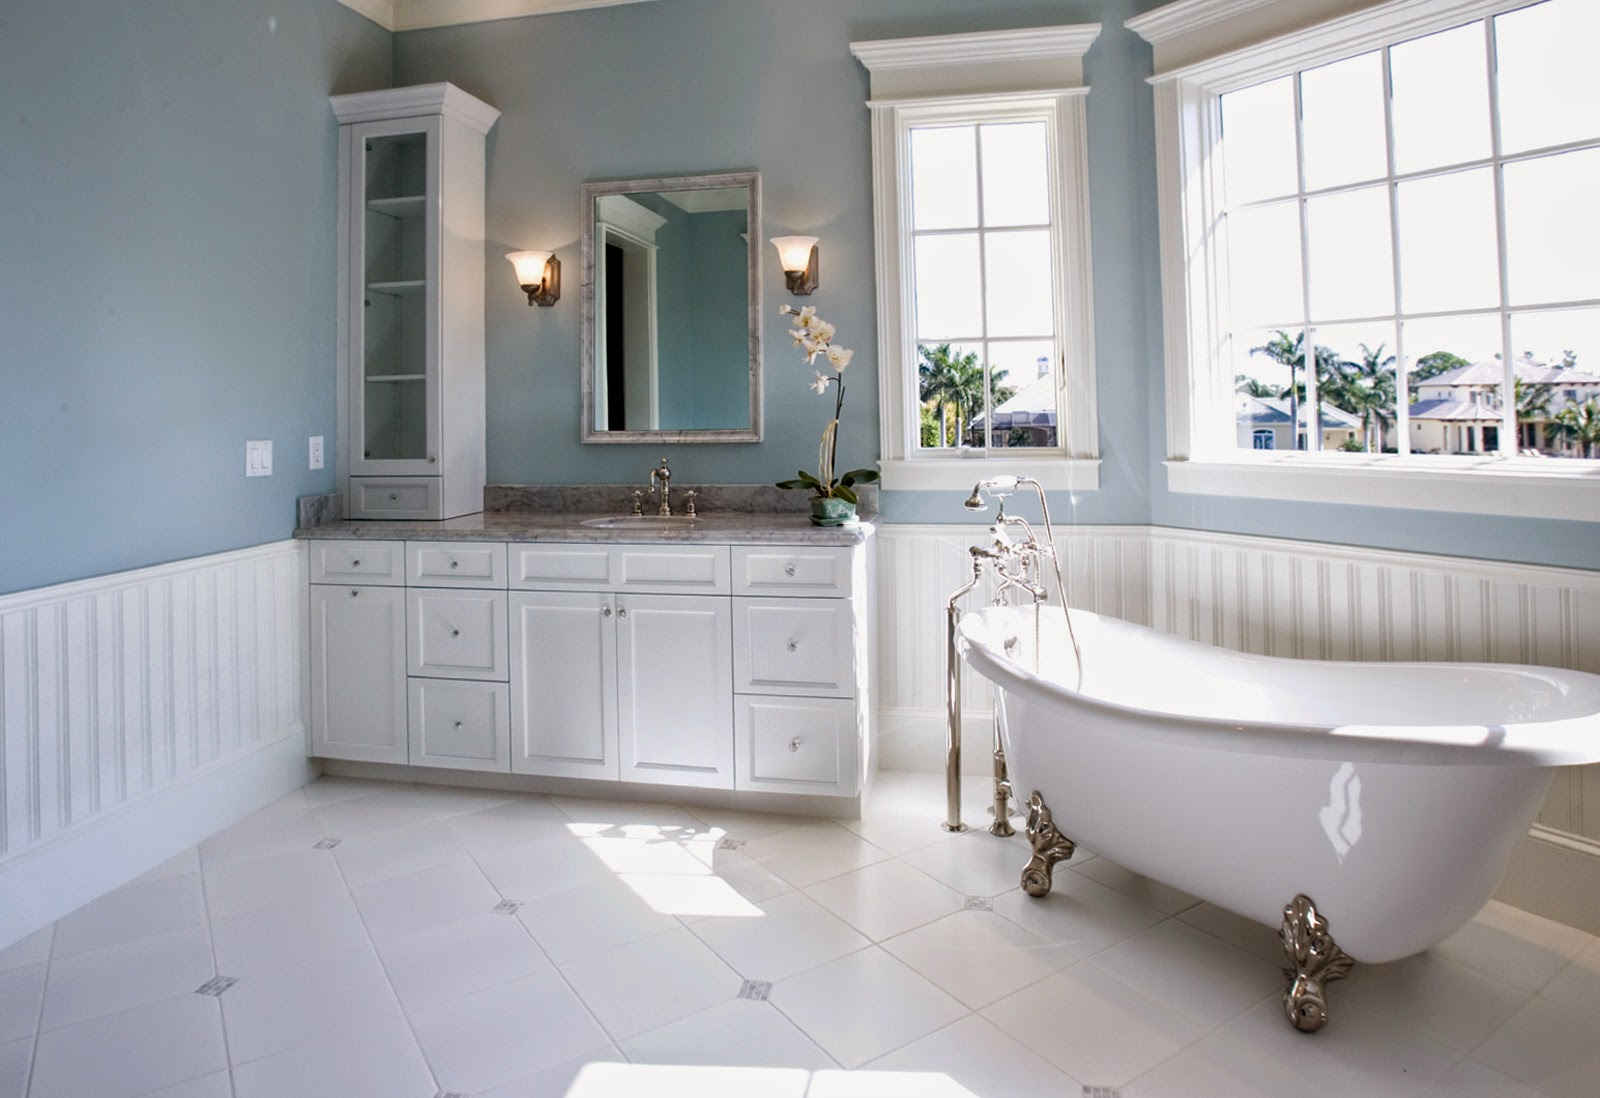 Top 10 beautiful bathroom design 2014 home interior blog for Bathroom ideas photos